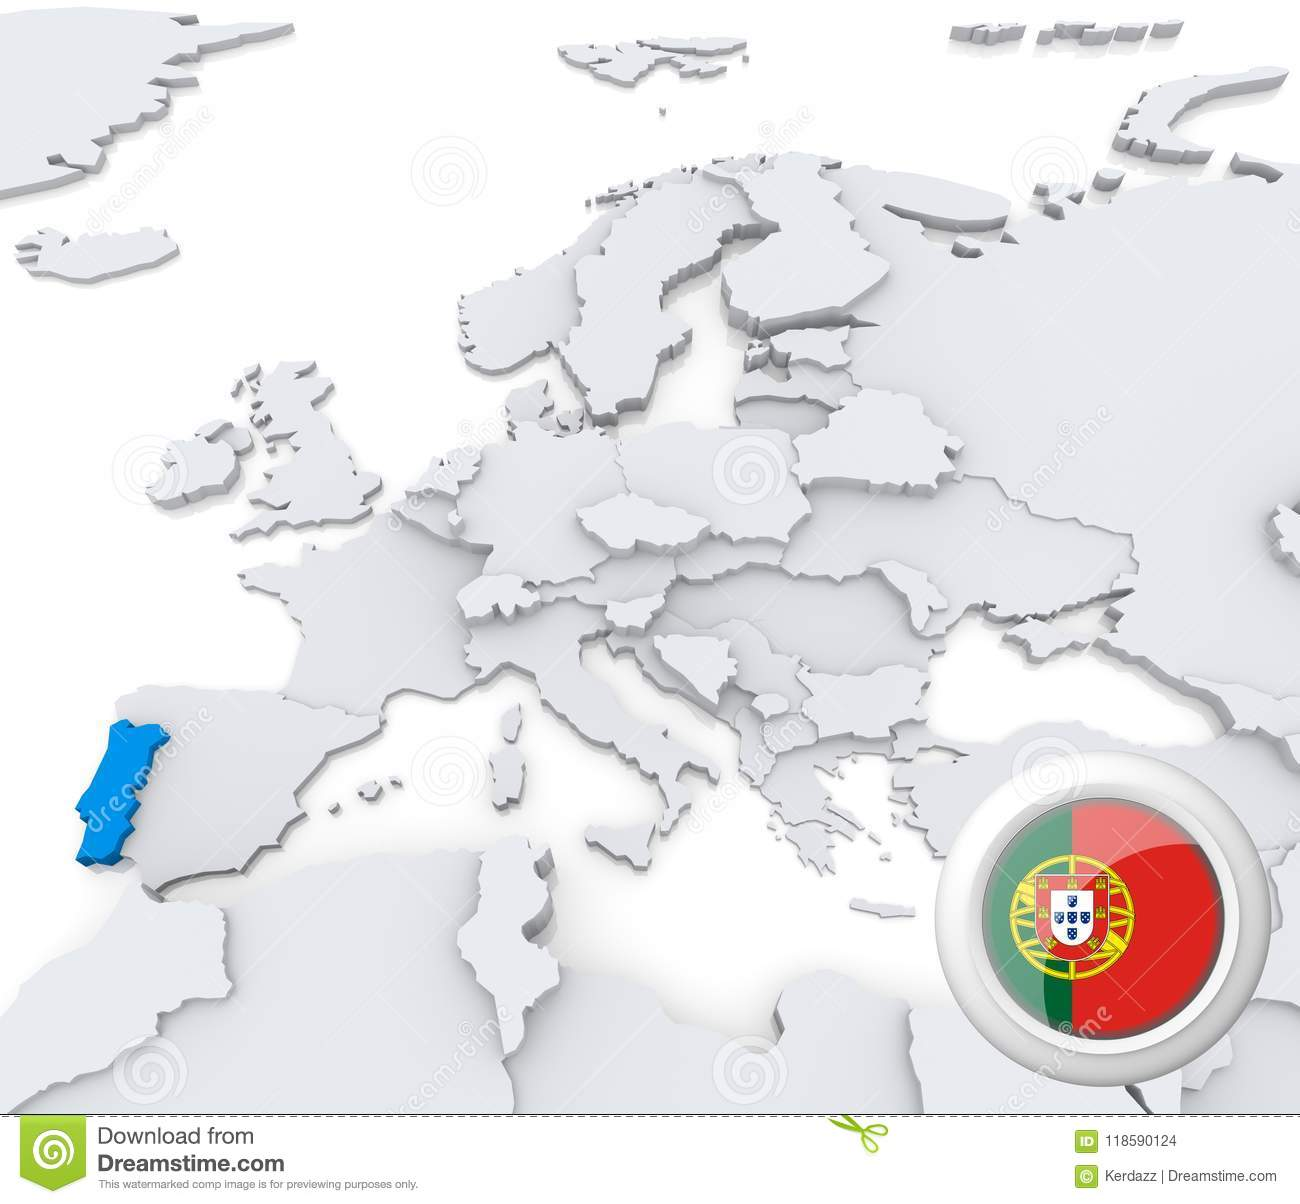 Portugal on map of Europe stock illustration. Illustration of nation ...